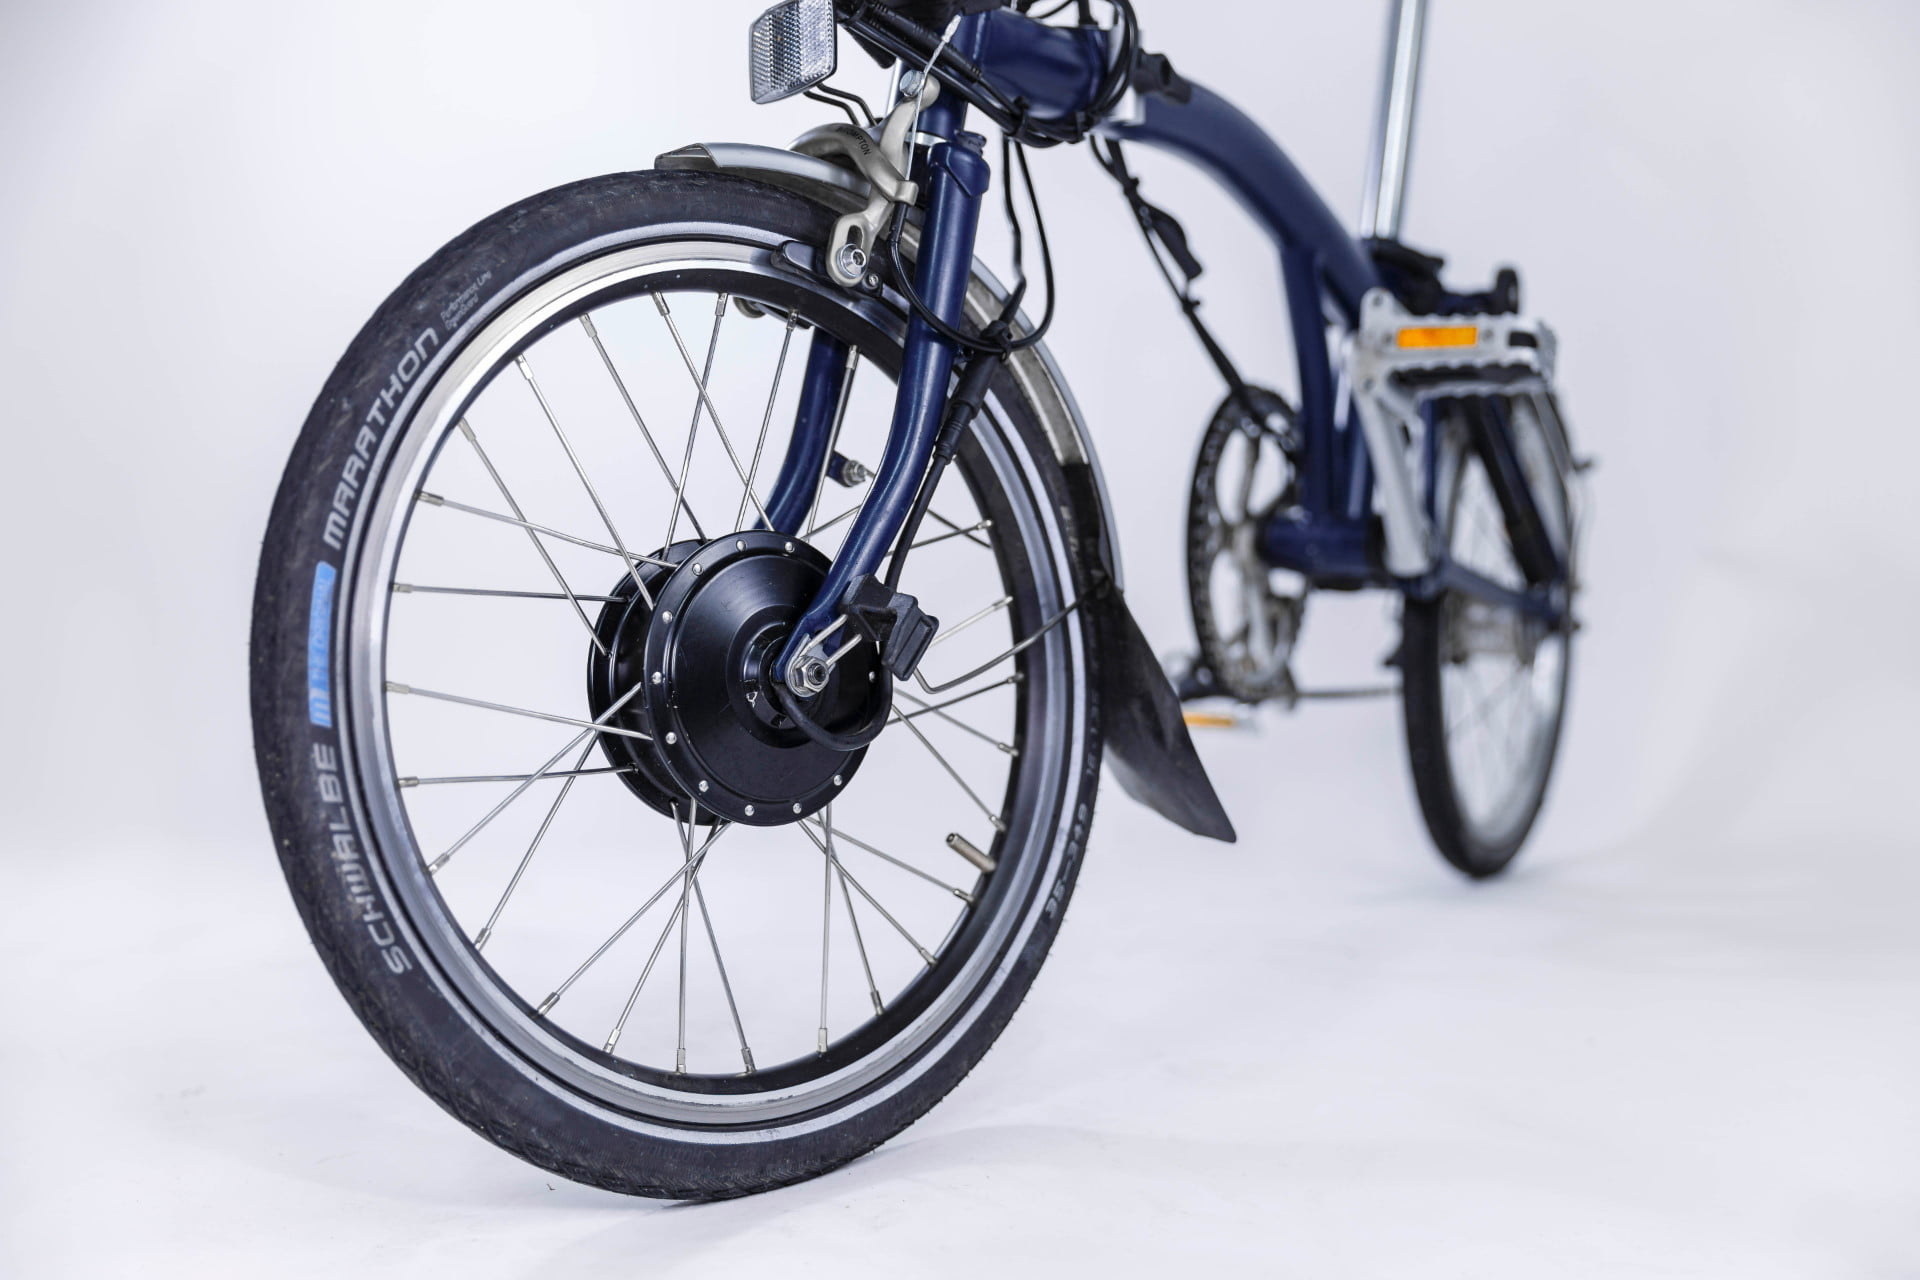 compact swytch kit converts any bike to an e for sustainable transport 5